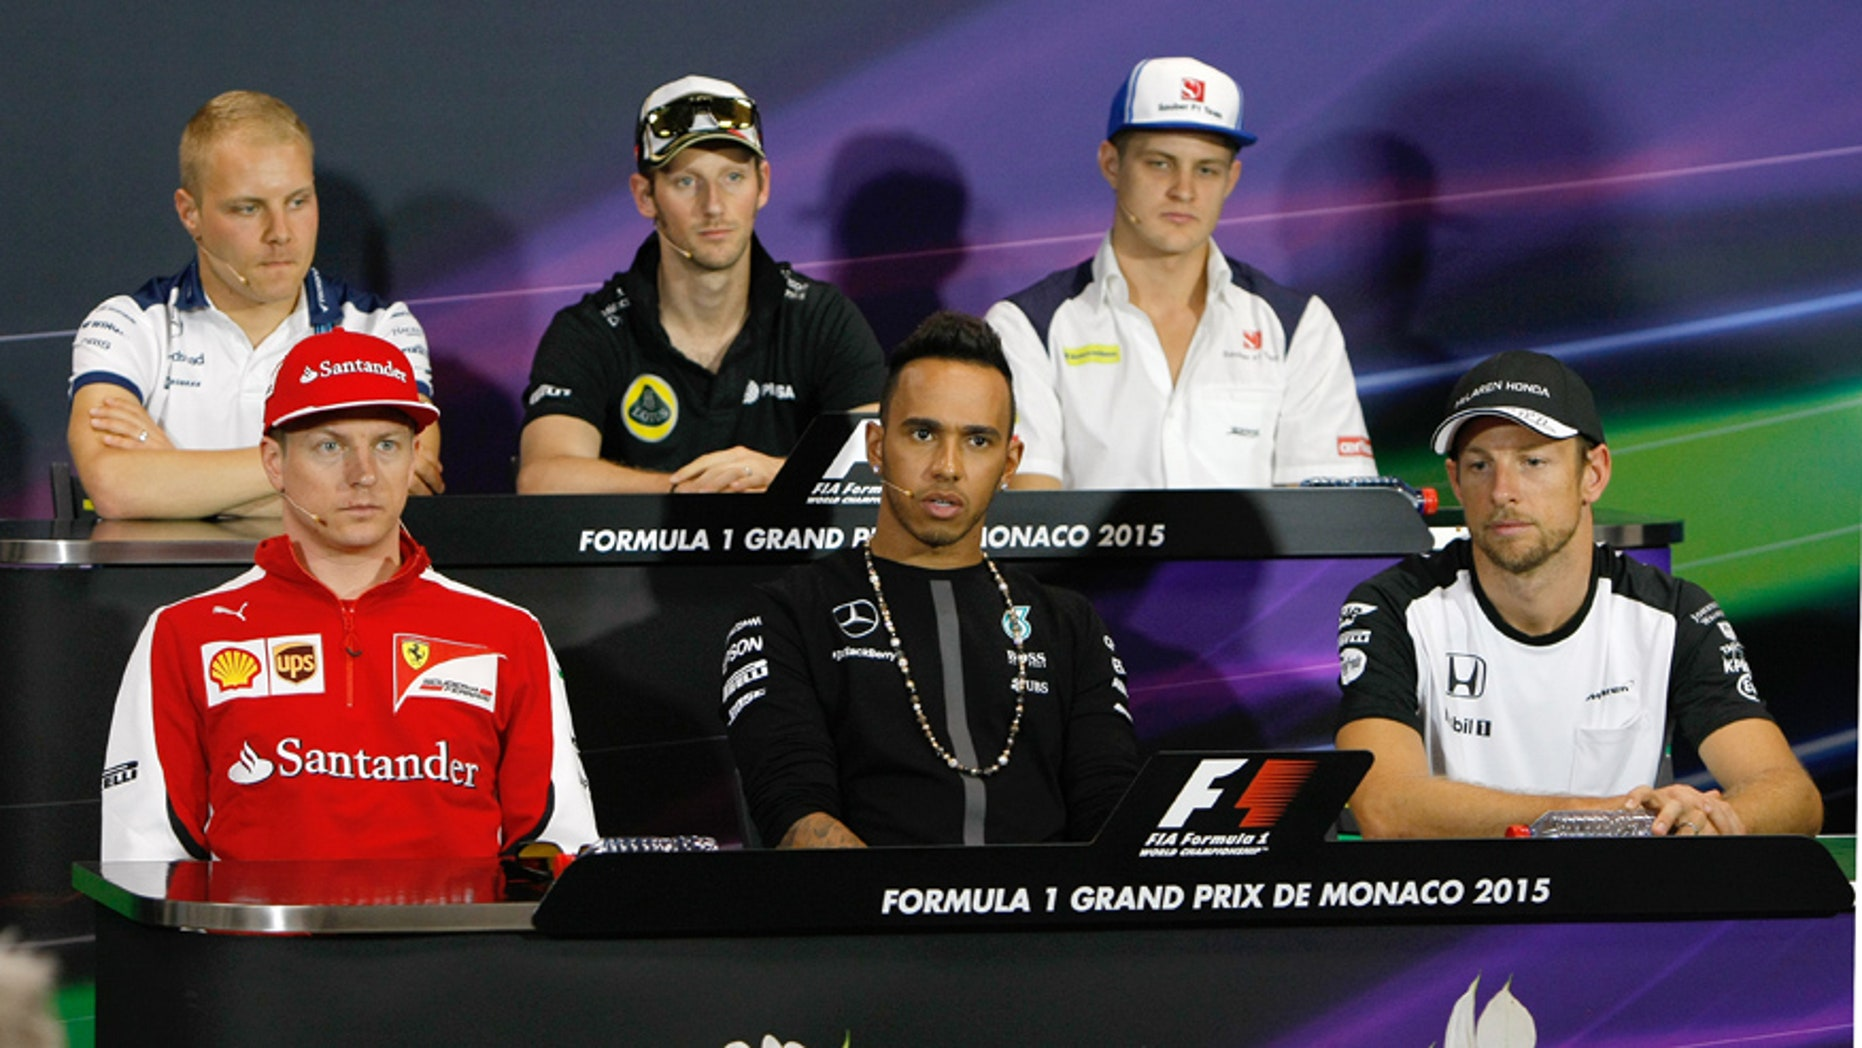 Ferrari driver Kimi Raikkonen of Finland, front left, Mercedes driver Lewis Hamilton of Britain, front center, McLaren driver Jenson Button of Britain, front right, Sauber driver Marcus Ericsson of Sweden, top left, Lotus driver Romain Grosjean of France, top center, and Williams driver Valtteri Bottas of Finland attend a press conference prior to the Formula One Grand Prix at the Monaco racetrack, in Monaco, Wednesday May 20, 2015. The Formula One race will be held on Sunday. (AP Photo/Claude Paris)